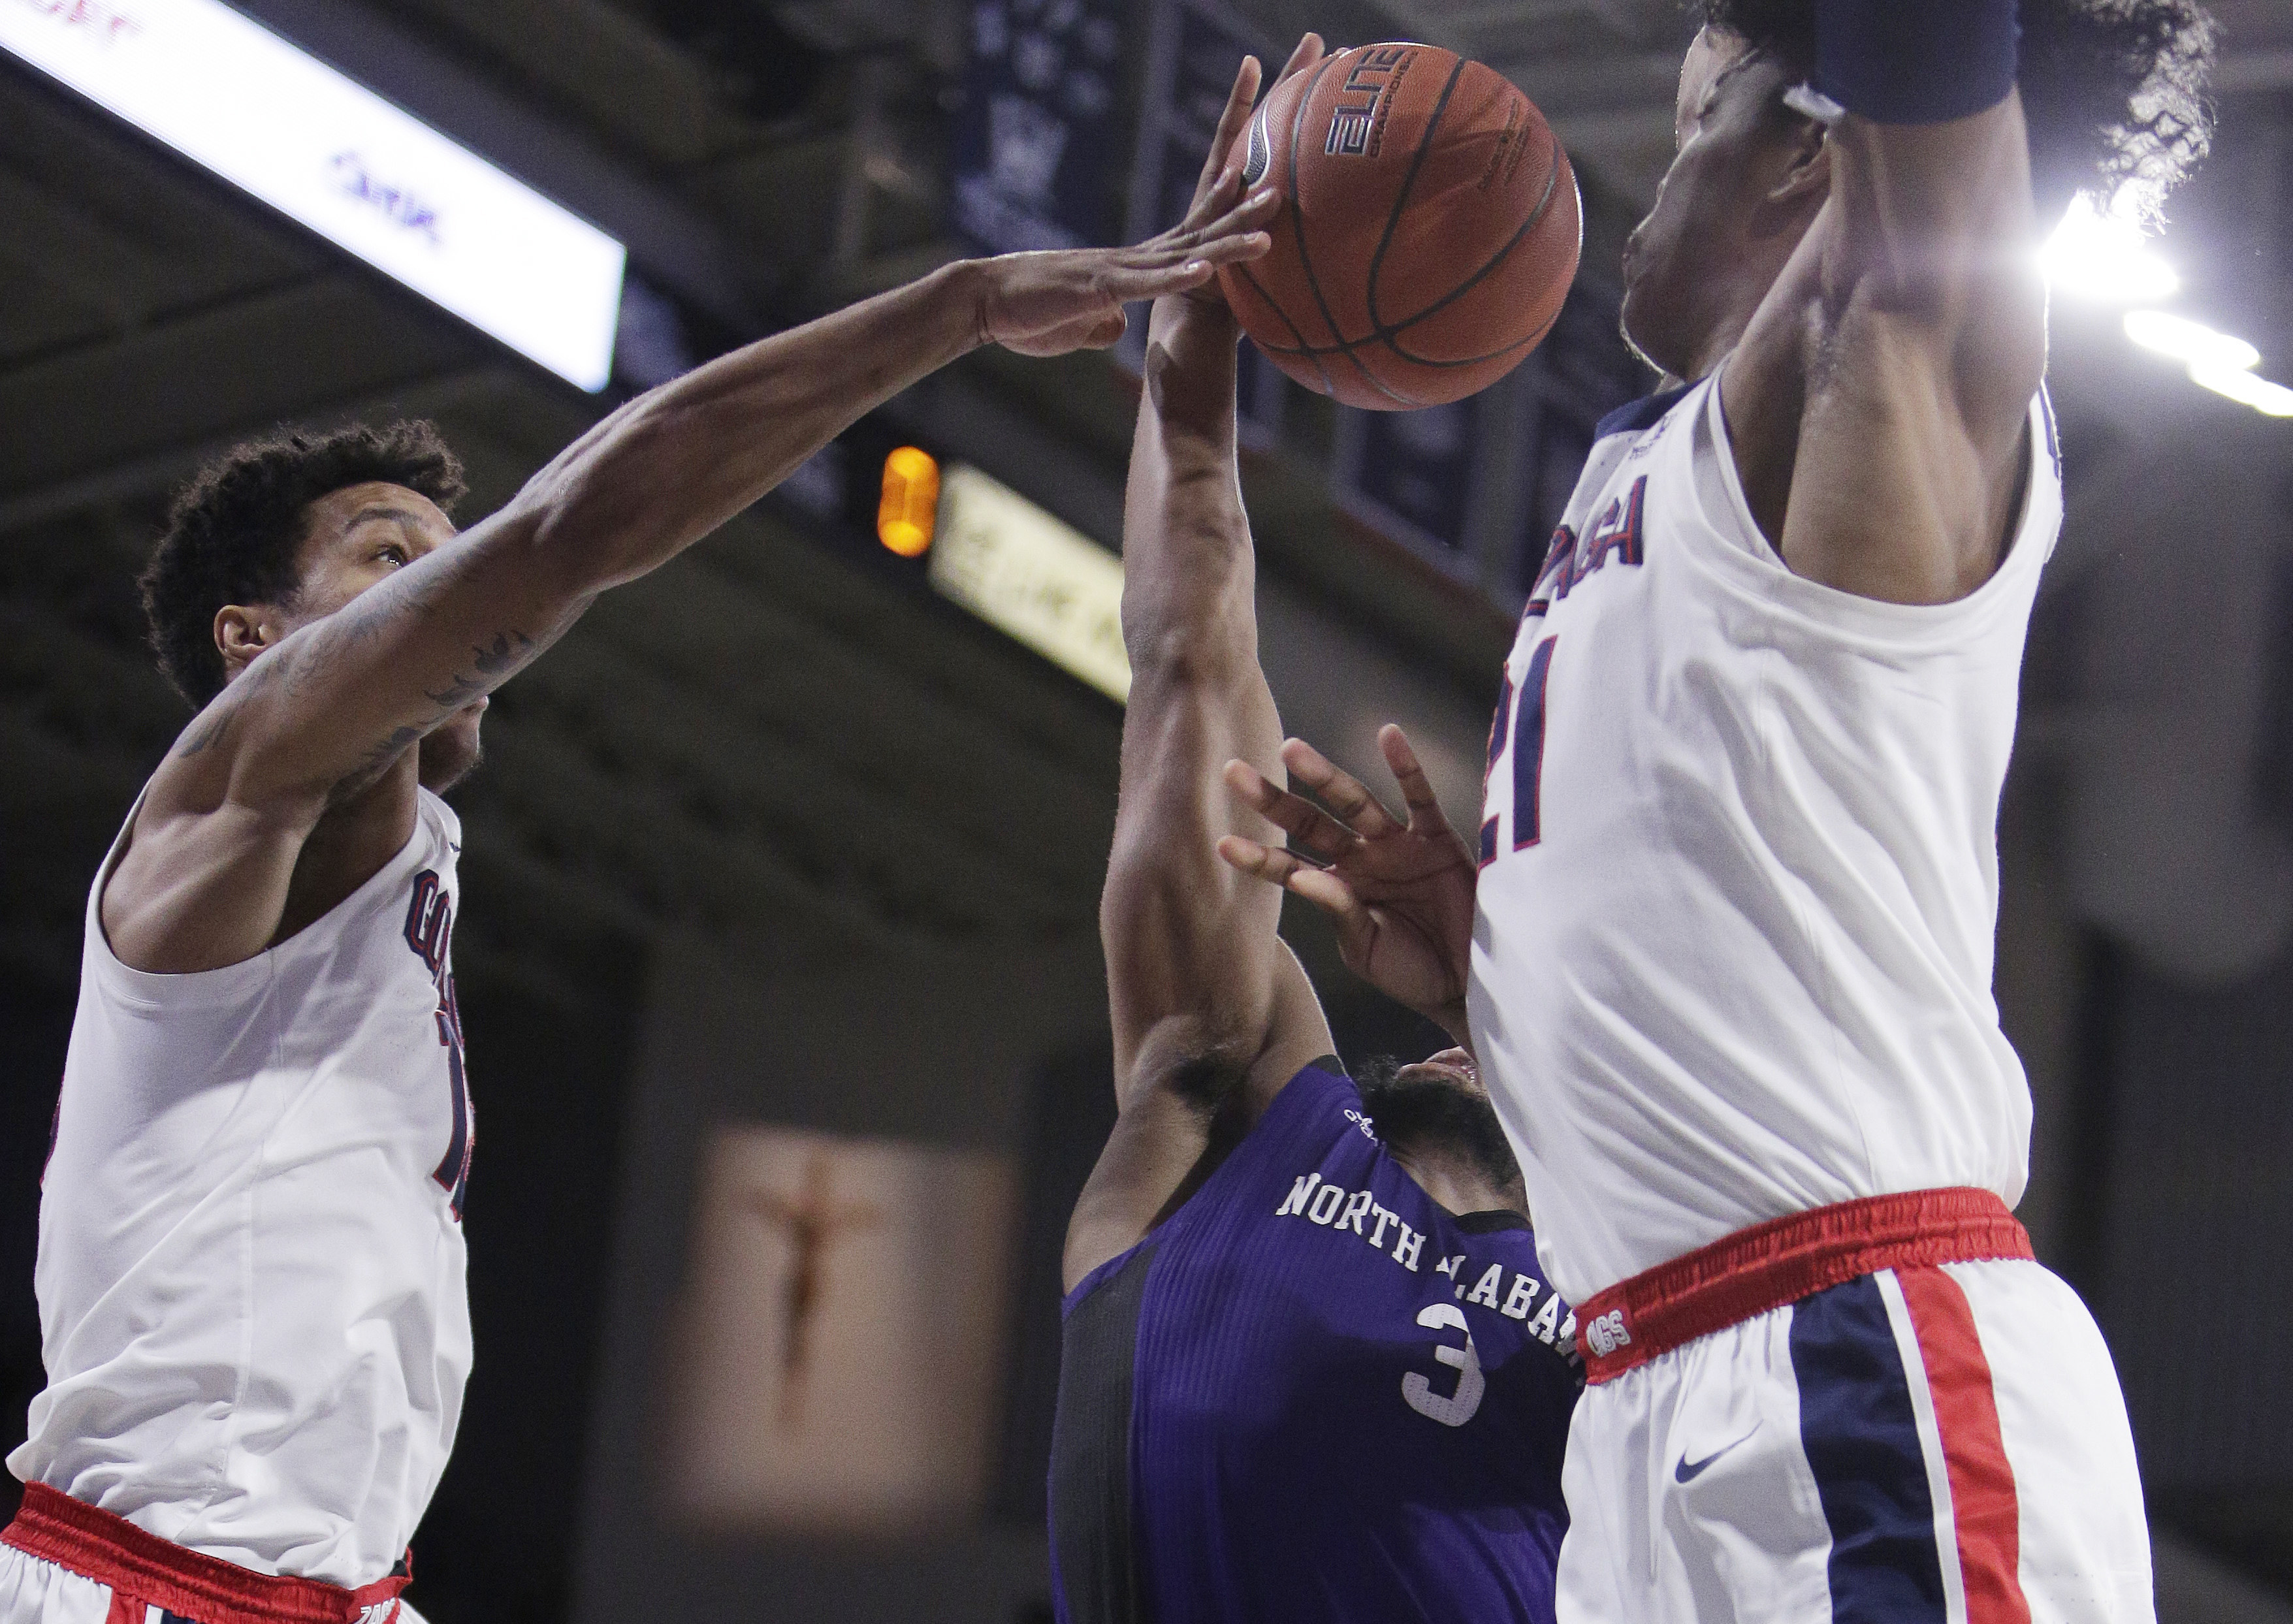 Norvell, Clarke lead No. 7 Gonzaga over North Alabama 96-51